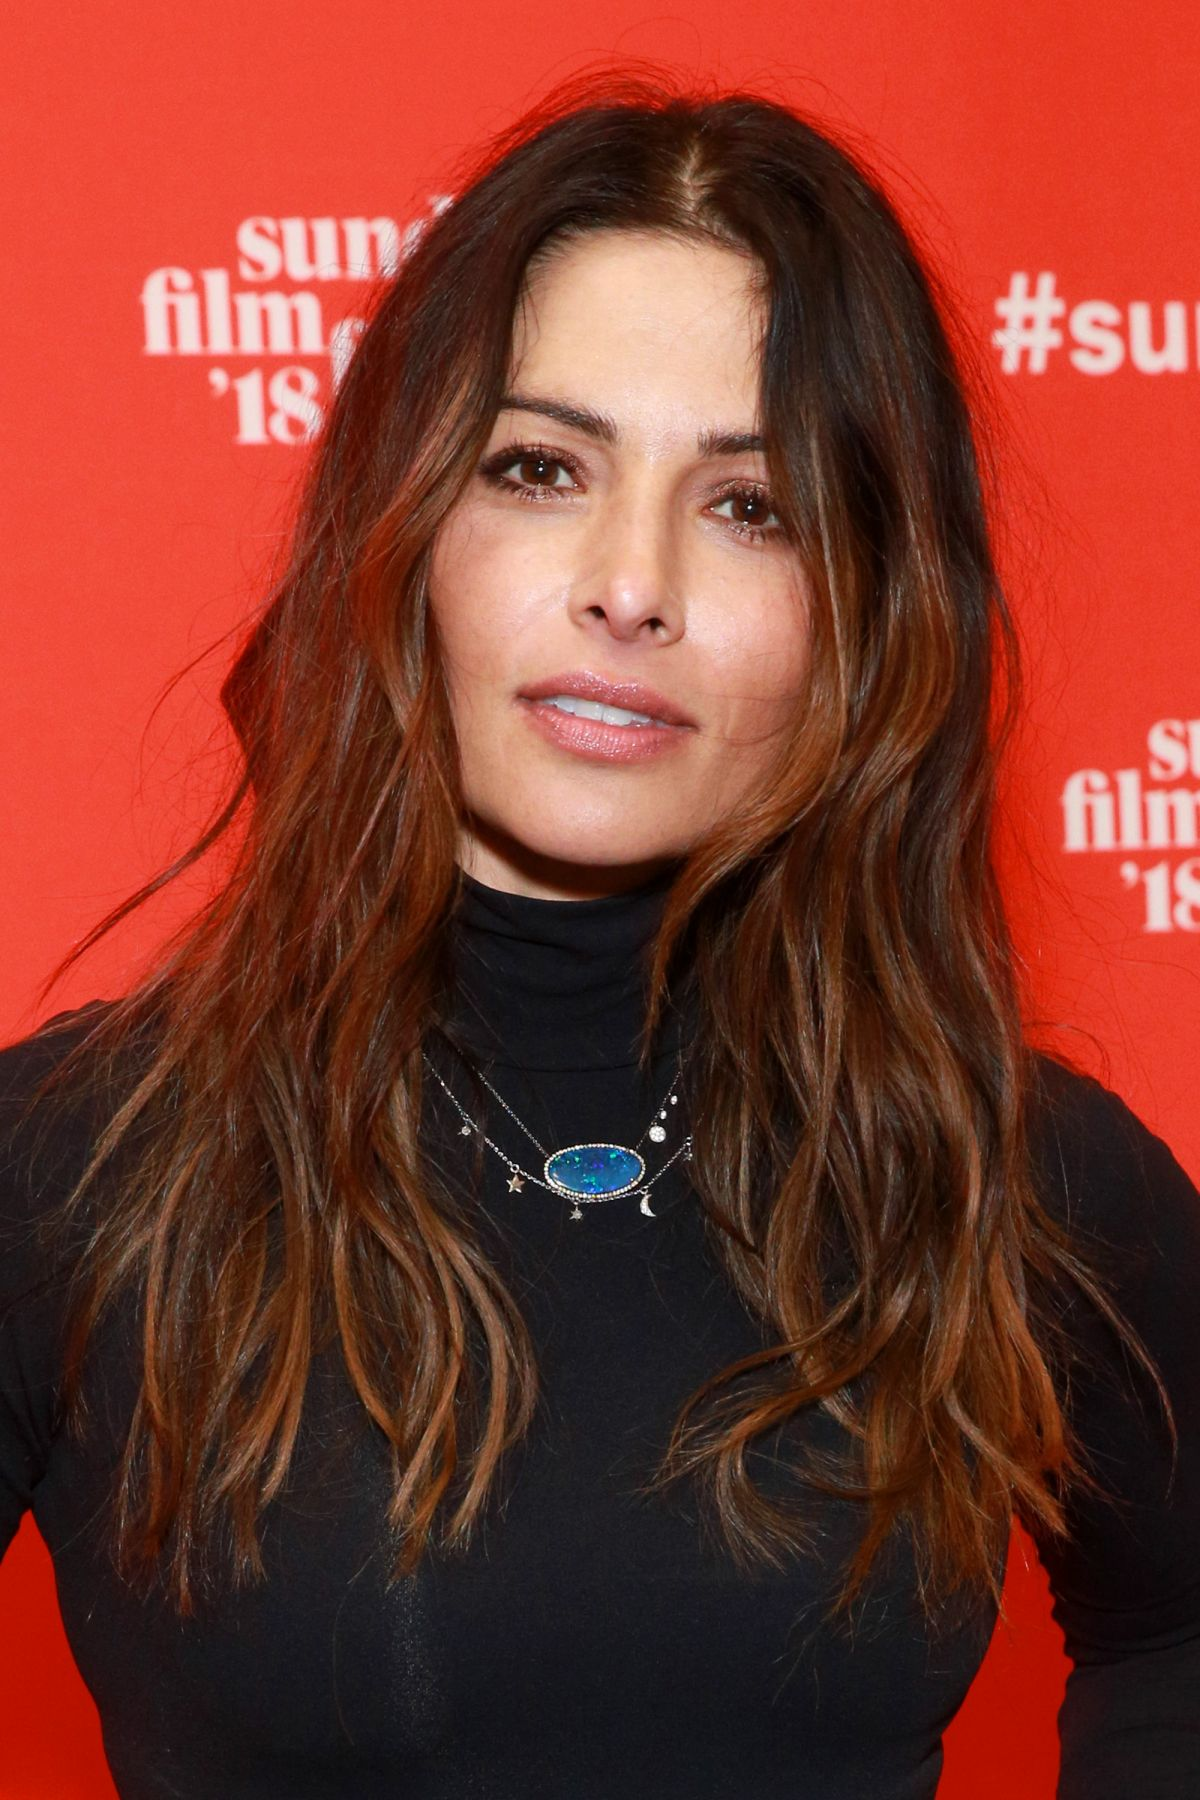 sarah-shahi-at-indie-episodic-program-1-during-sundance-film-festival-in-park-city-1.jpg